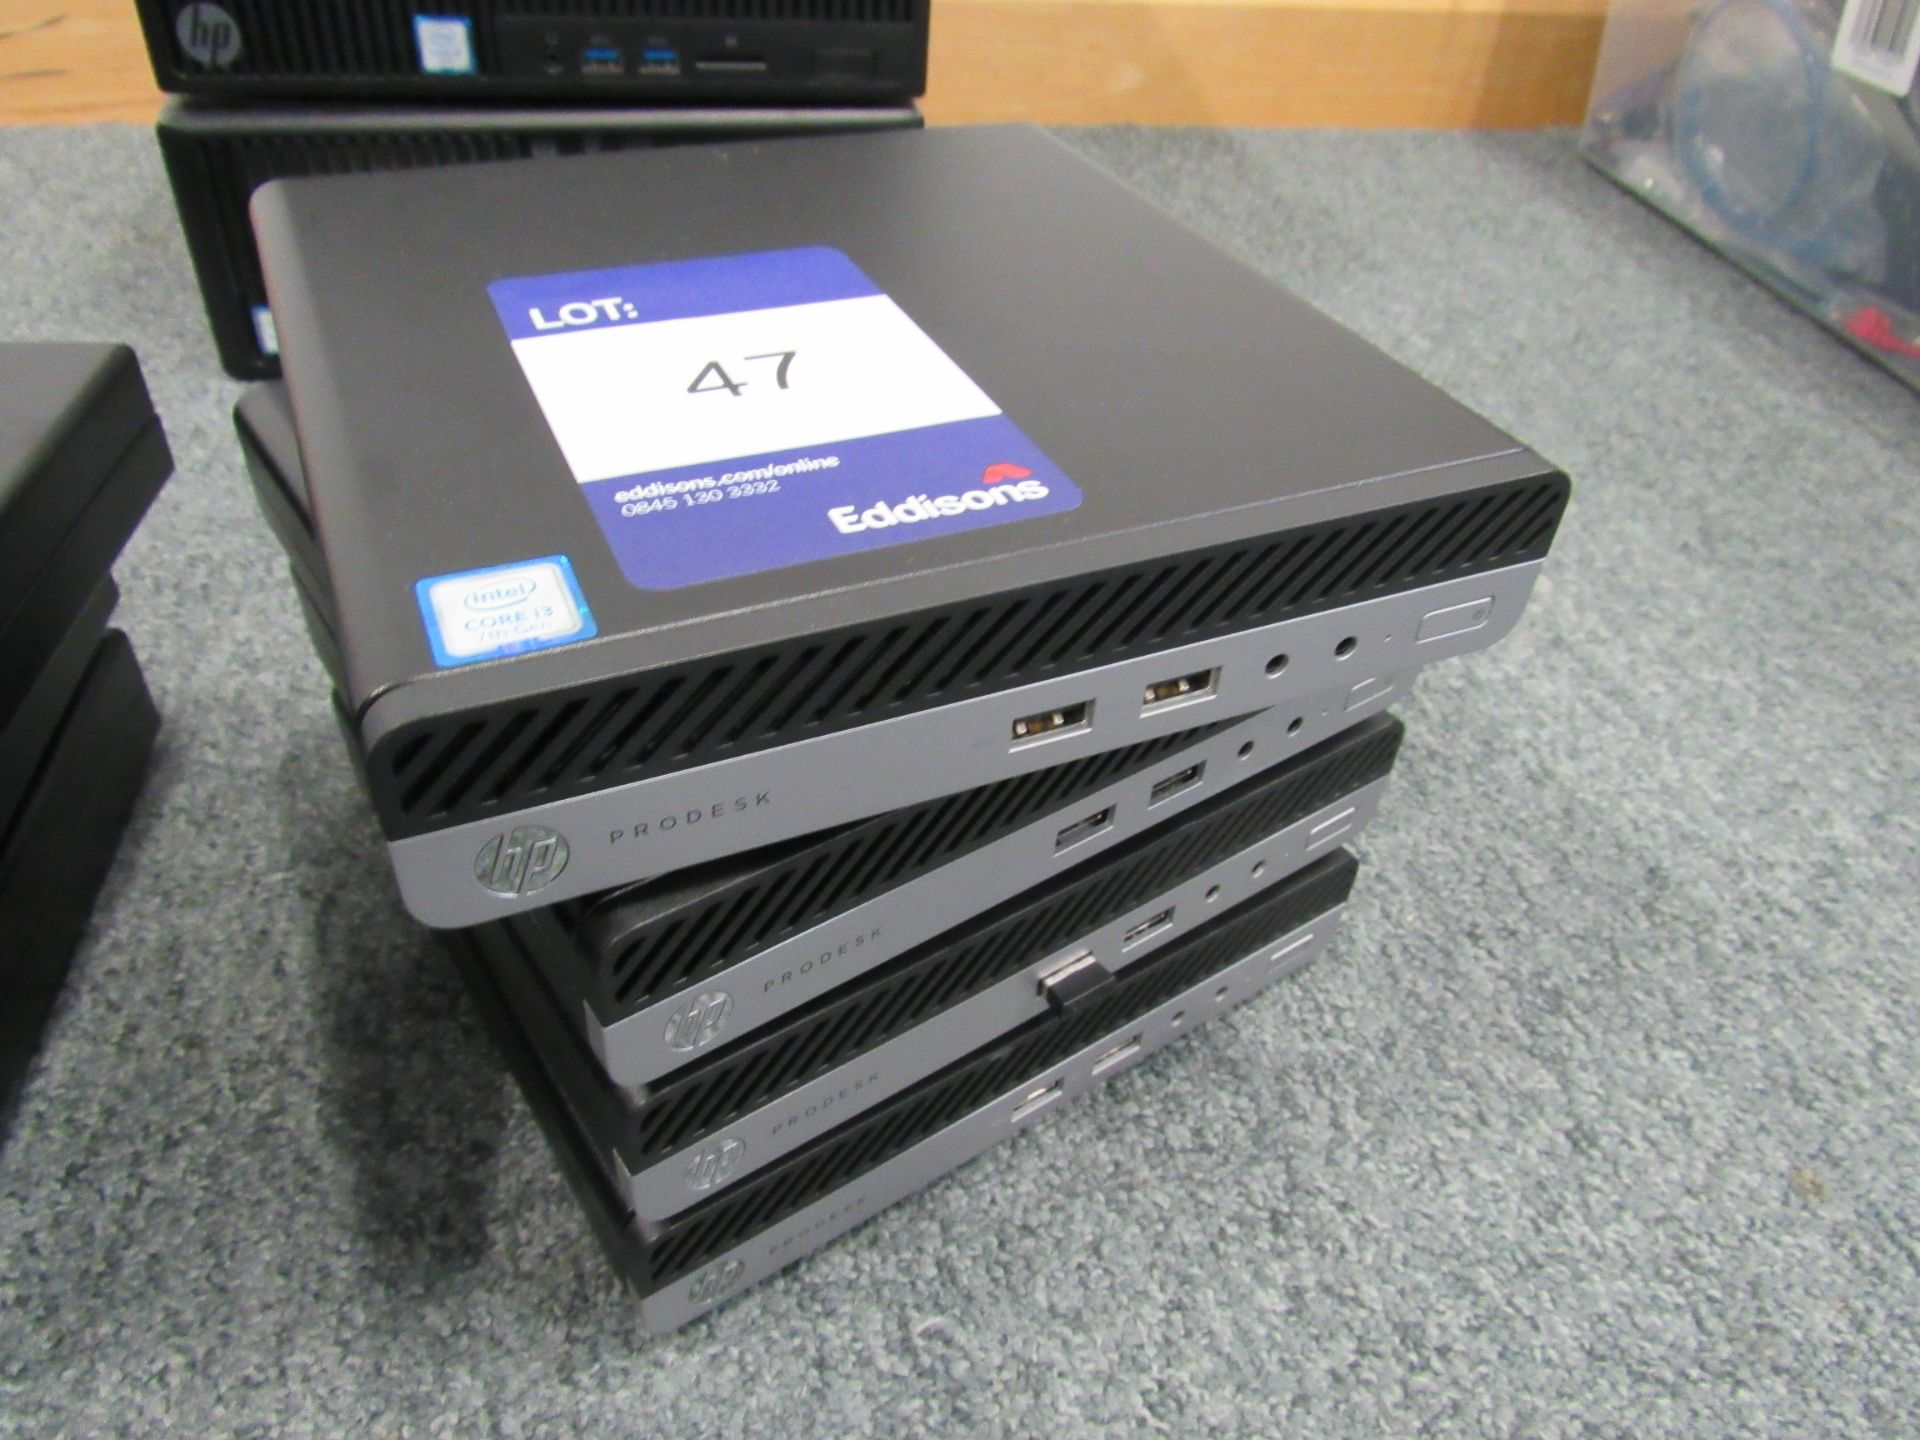 Lot 47 - 4 HP Pro Desk 400 G3 Desktop Mini PC's, No HDD's